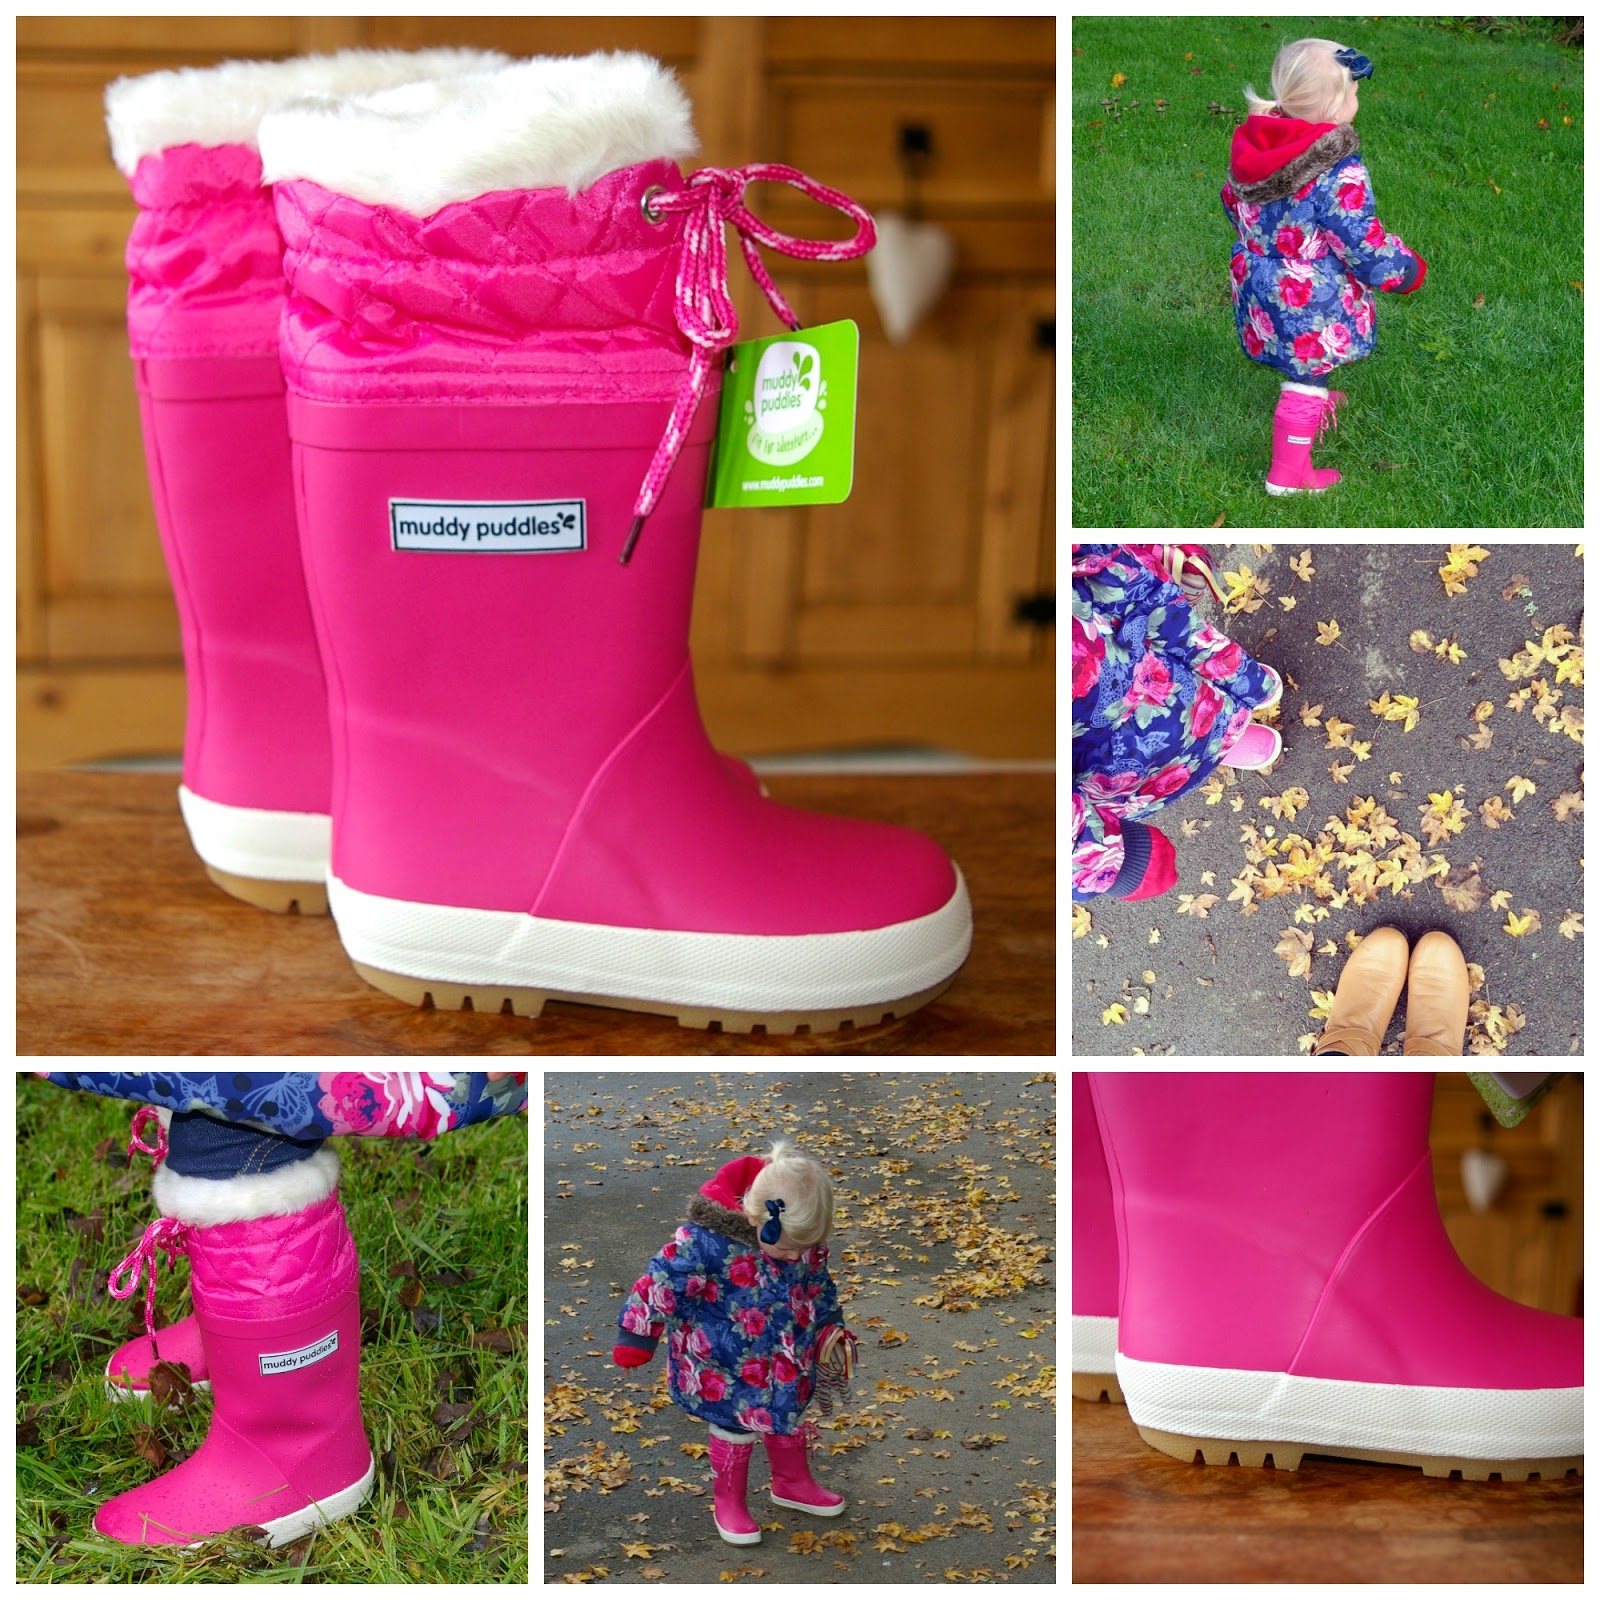 muddy puddles puddleflex wellies review